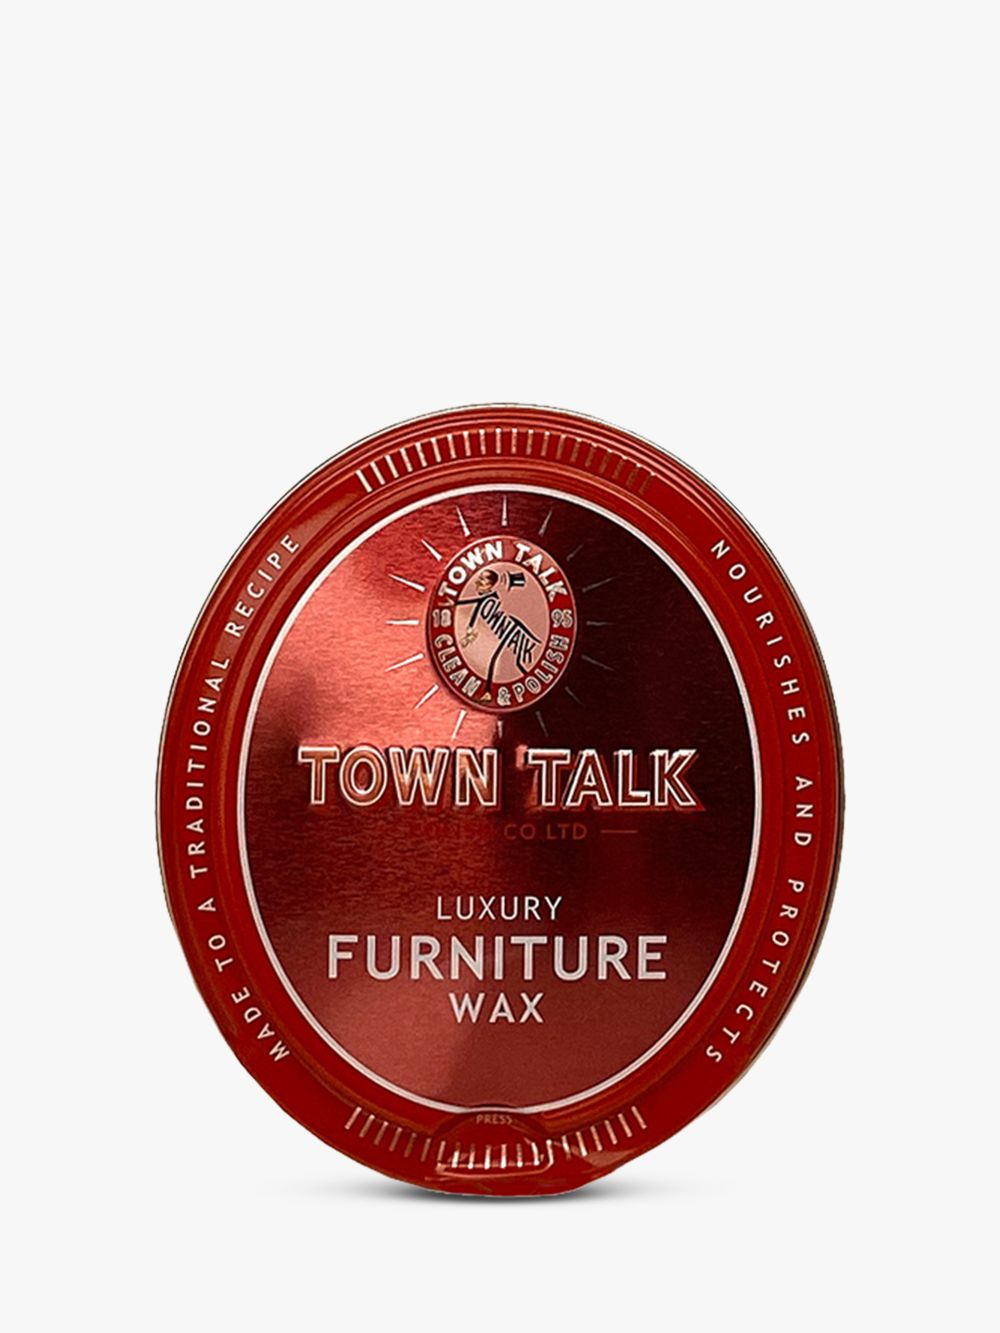 Town Talk Town Talk Luxury Furniture Wax, 150g